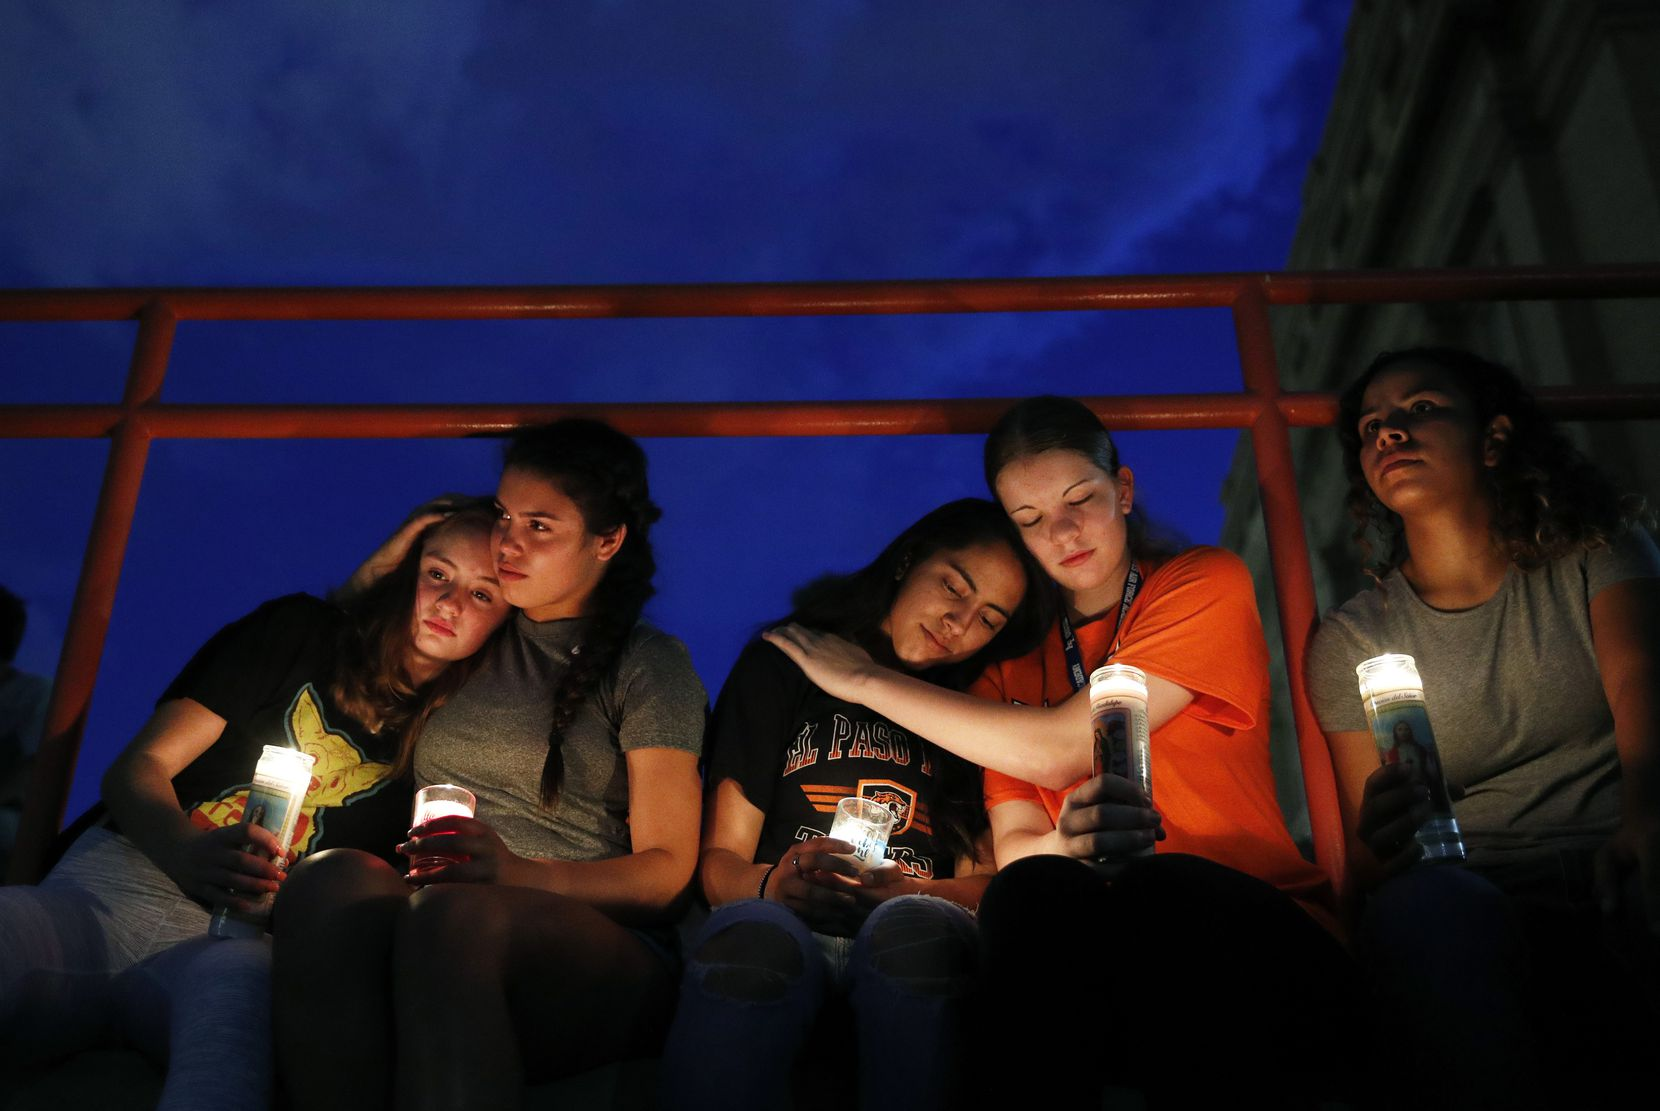 From left: Melody Stout, Hannah Payan, Aaliyah Alba, Sherie Gramlich and Laura Barrios comfort each other during a vigil for victims of the shooting Saturday, Aug. 3, 2019, in El Paso. A young gunman opened fire in an El Paso shopping area during the busy back-to-school season, leaving multiple people dead and more than two dozen injured.